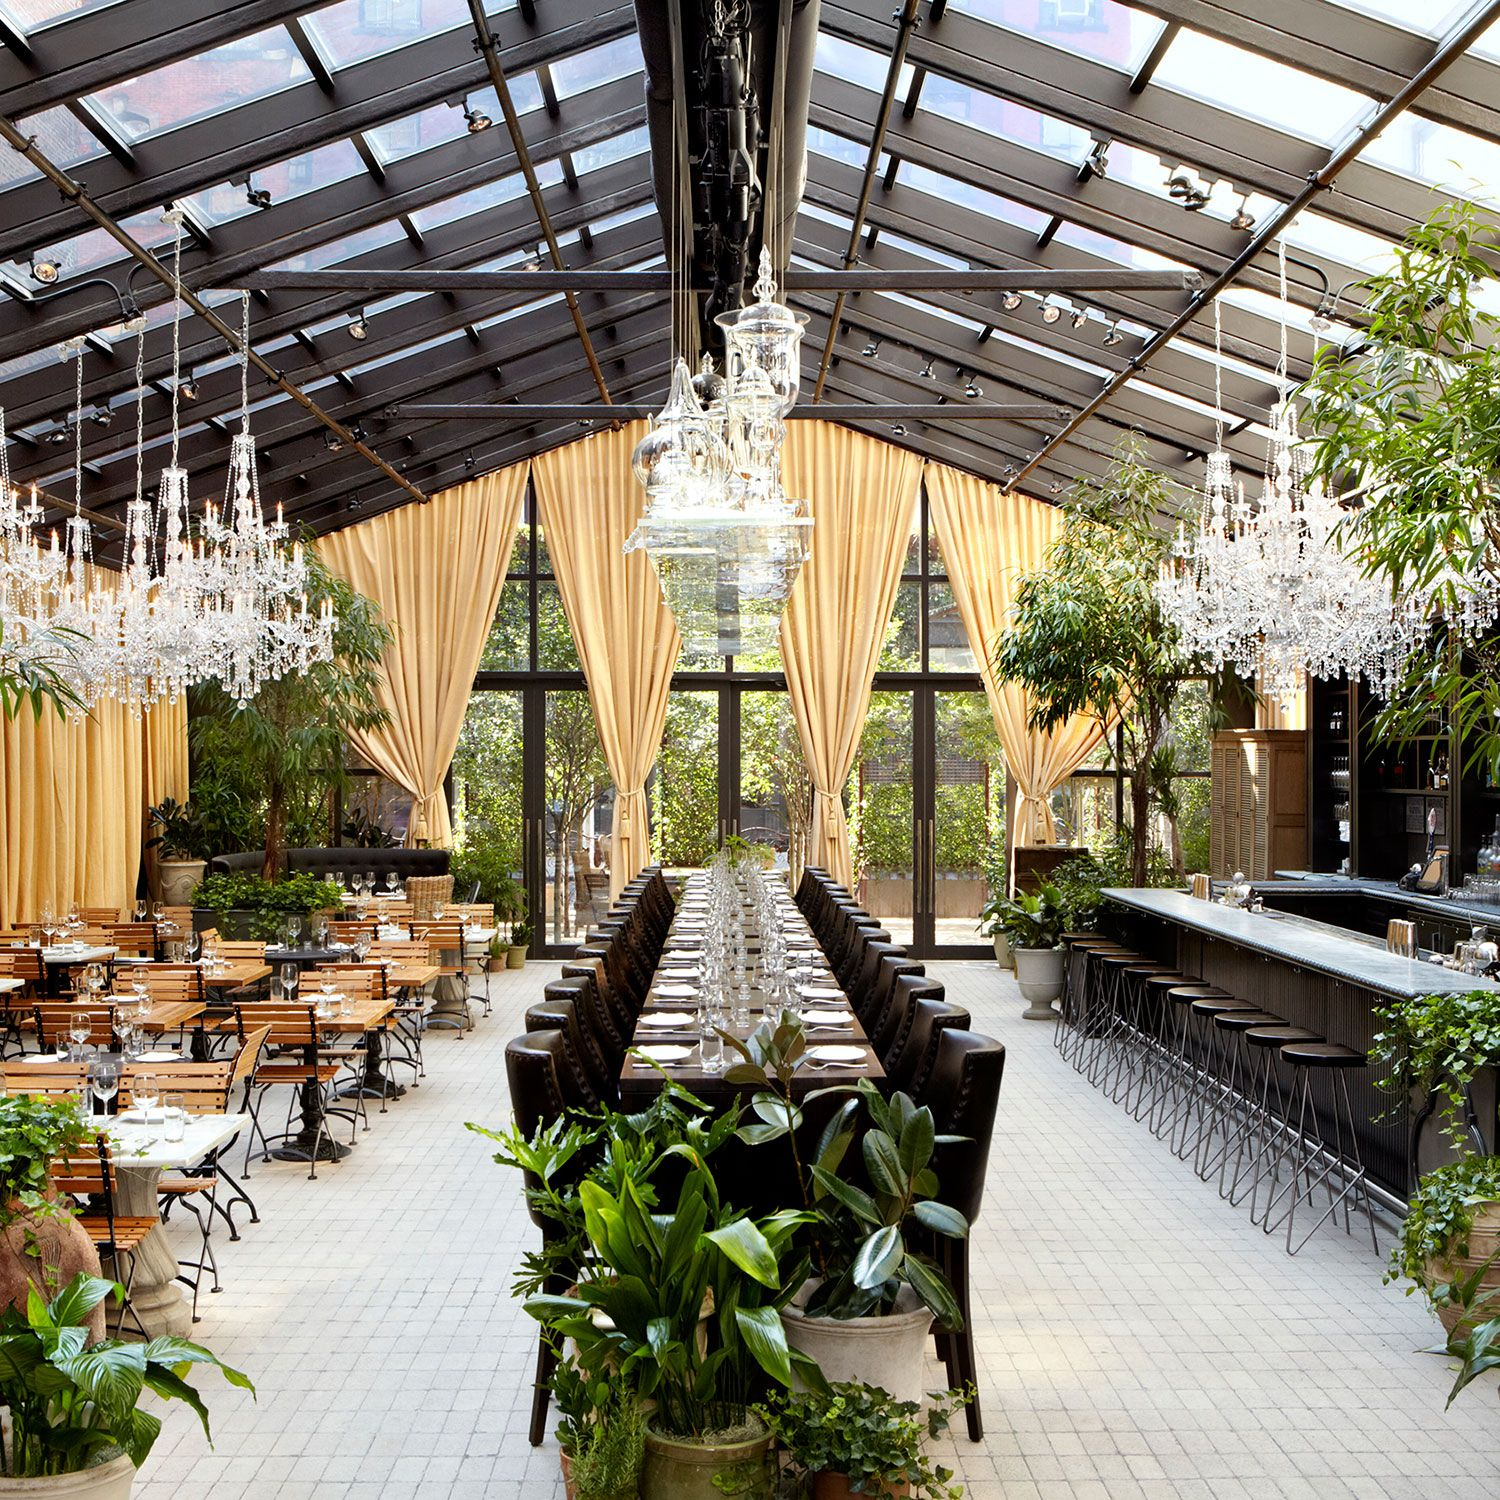 Indoor Garden Restaurant Nyc Indoor garden restaurant nyc greenfain indoor garden restaurant nyc new yorks chicest garden restaurants best restaurants with workwithnaturefo